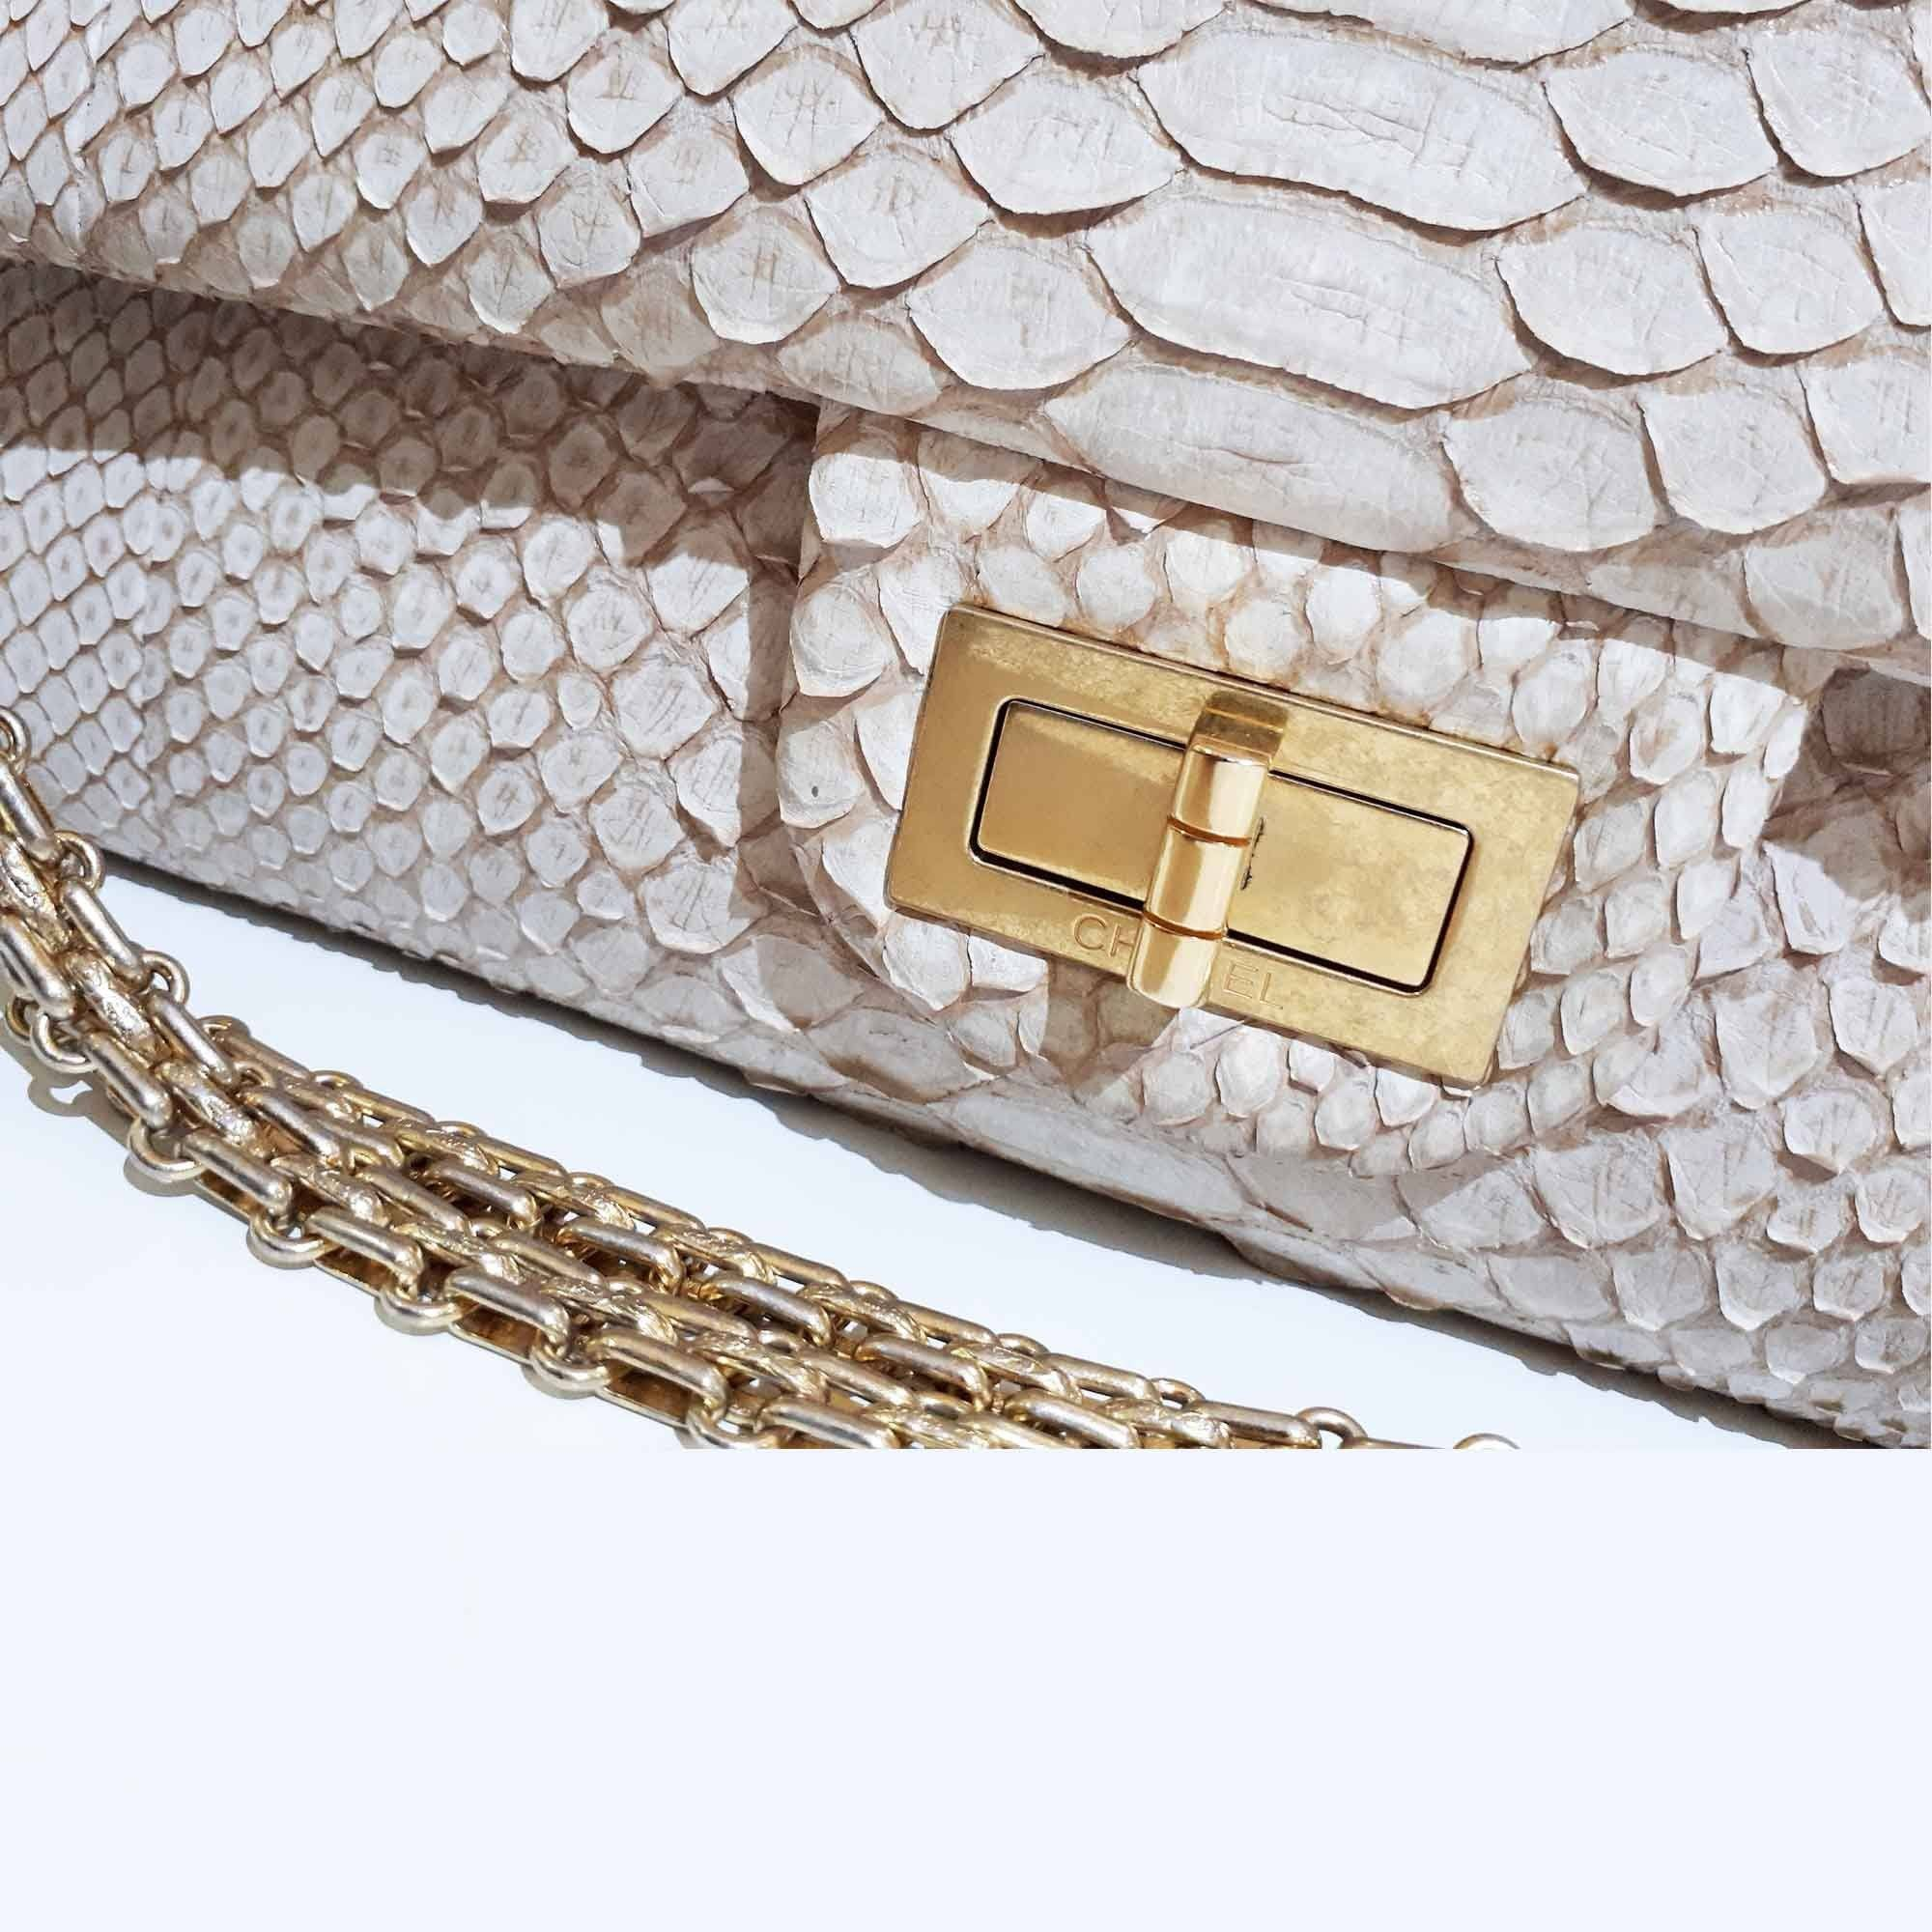 Chanel Python Reissue 2.55 Flap Bag